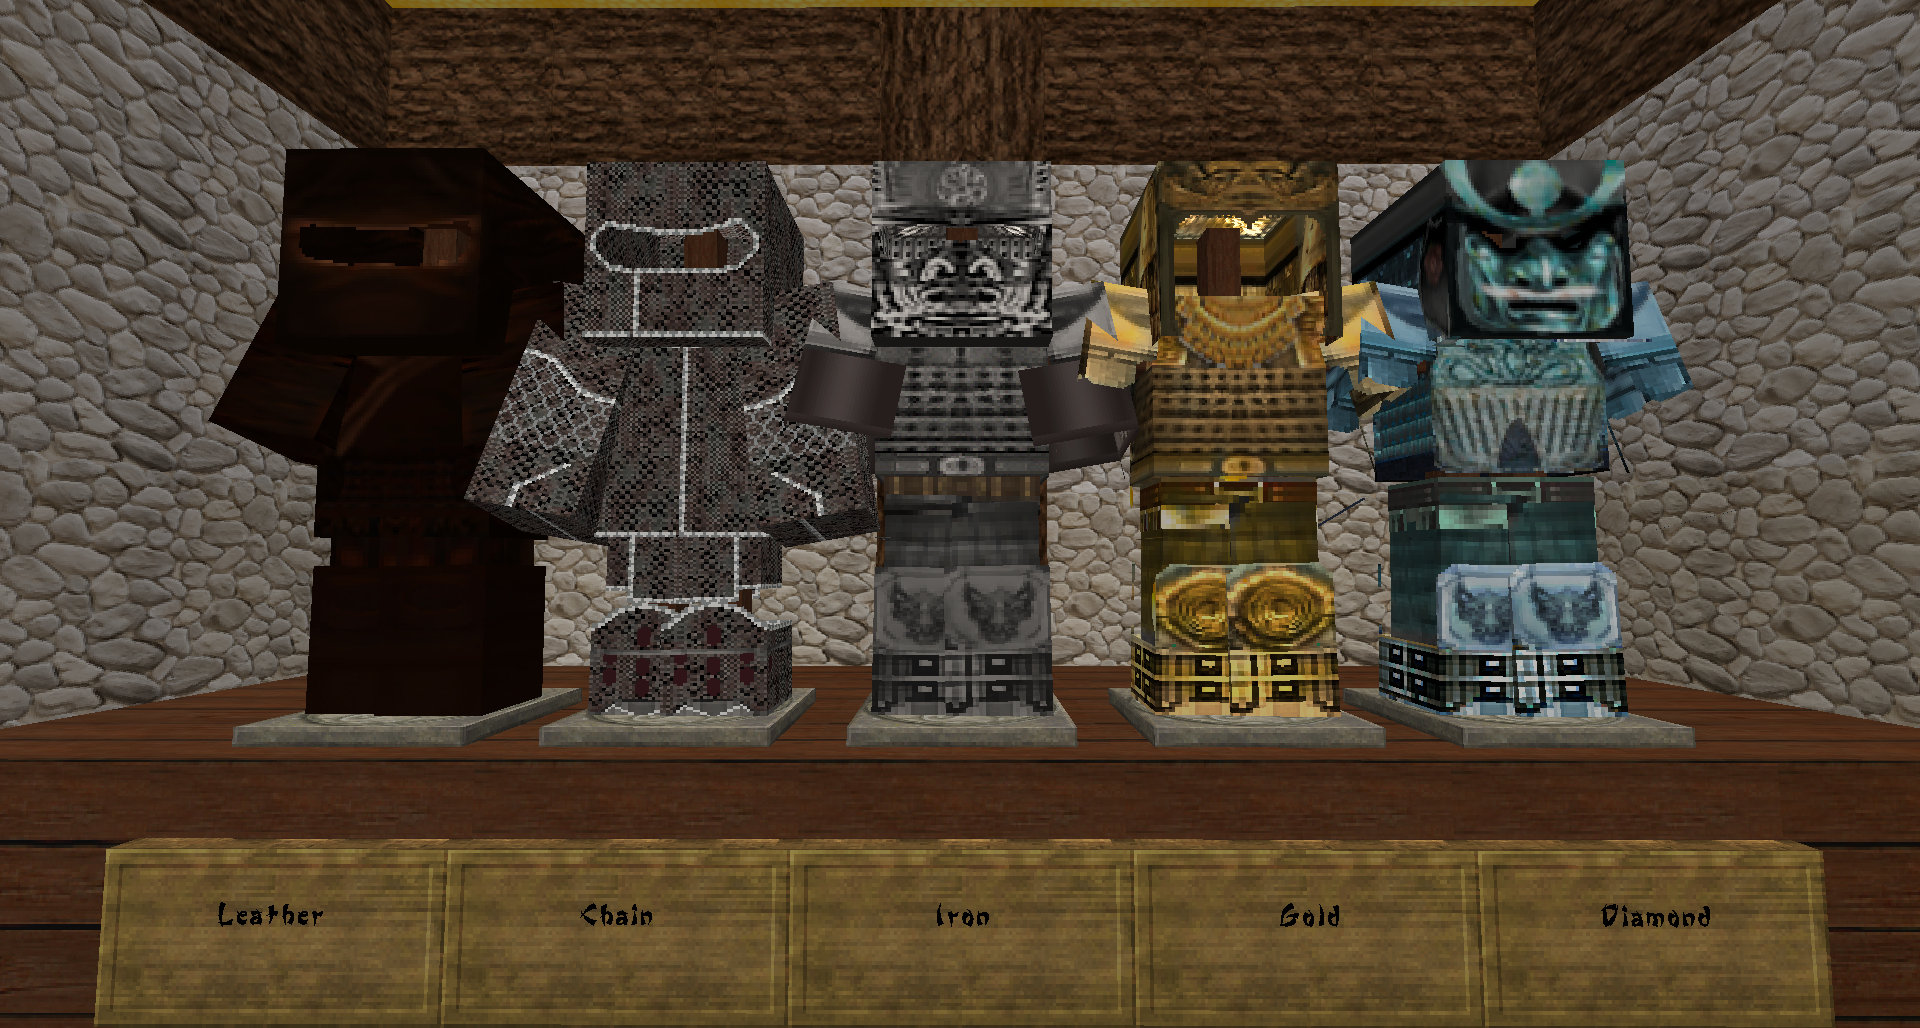 Download Images - Woocraft x128 Asian Resource Pack - Texture Packs ...